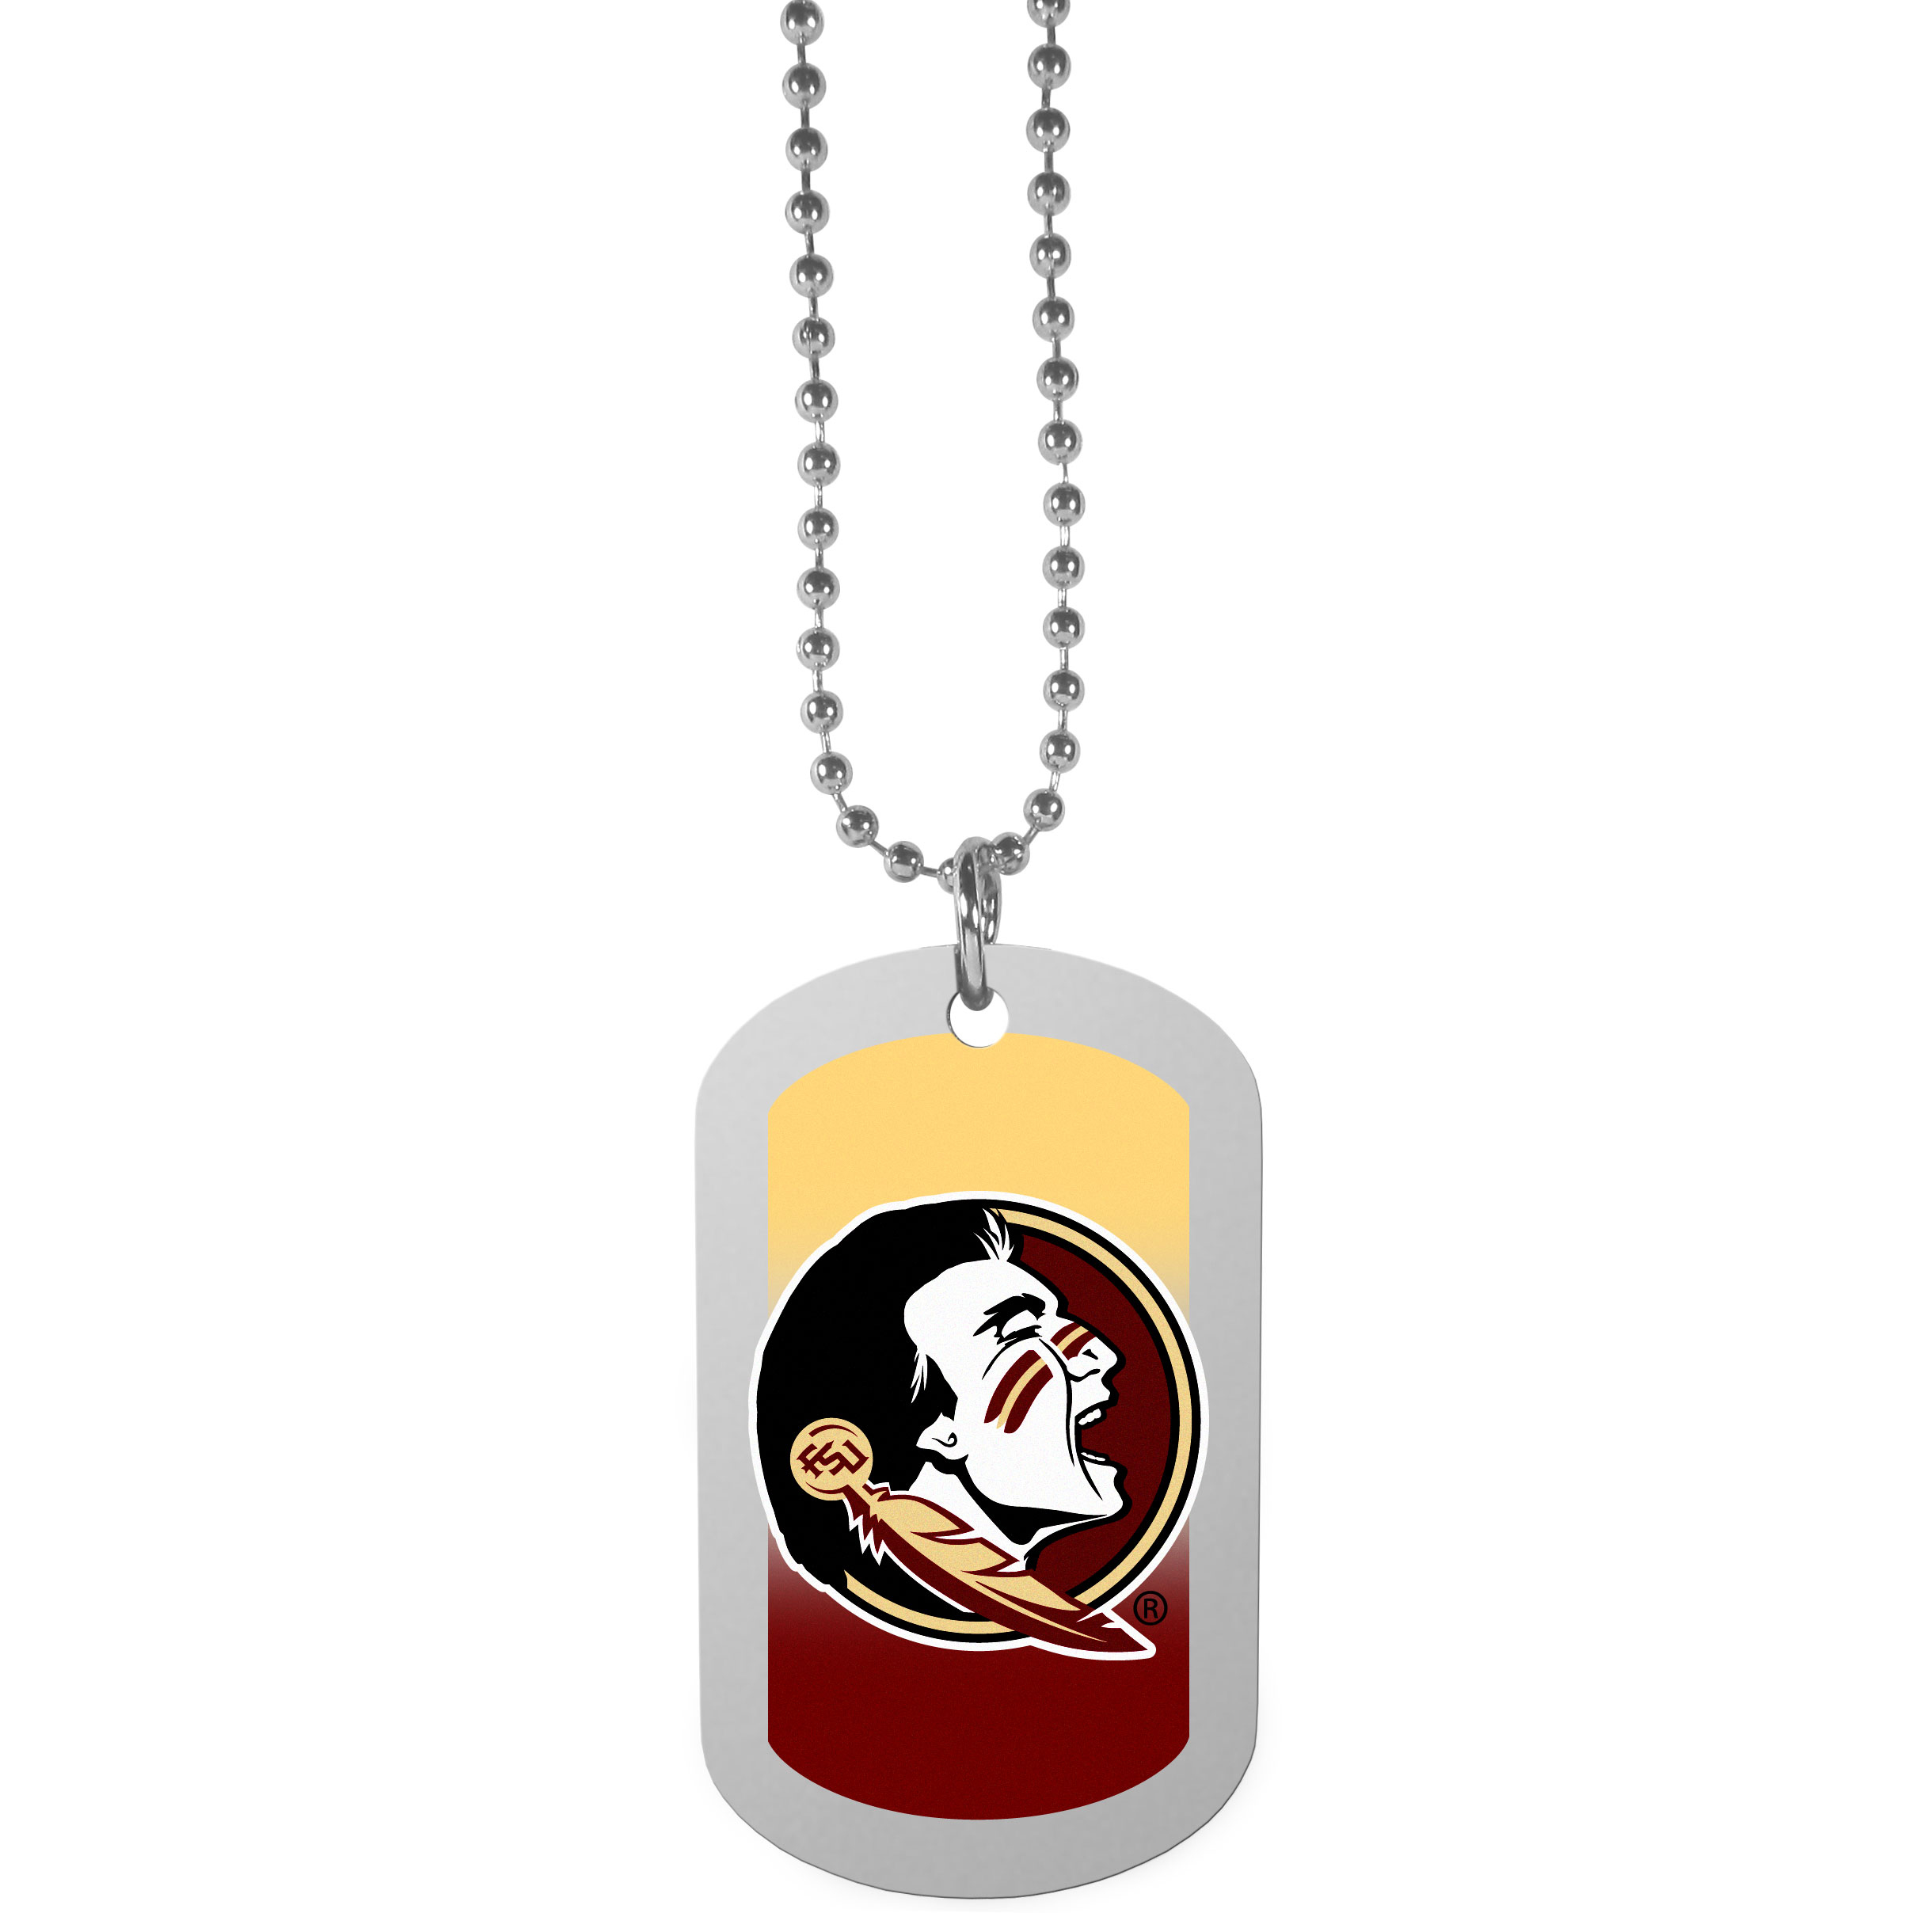 Florida St. Seminoles Team Tag Necklace - Dog tag necklaces are a fashion statement that is here to stay. The sporty version of the classic tag features a gradient print in team colors featuring a full color team logo over a high polish tag to create a bold and sporty look. The tag comes on a 26 inch ball chain with a ball and joint clasp. Any Florida St. Seminoles would be proud to wear this attractive fashion accessory.